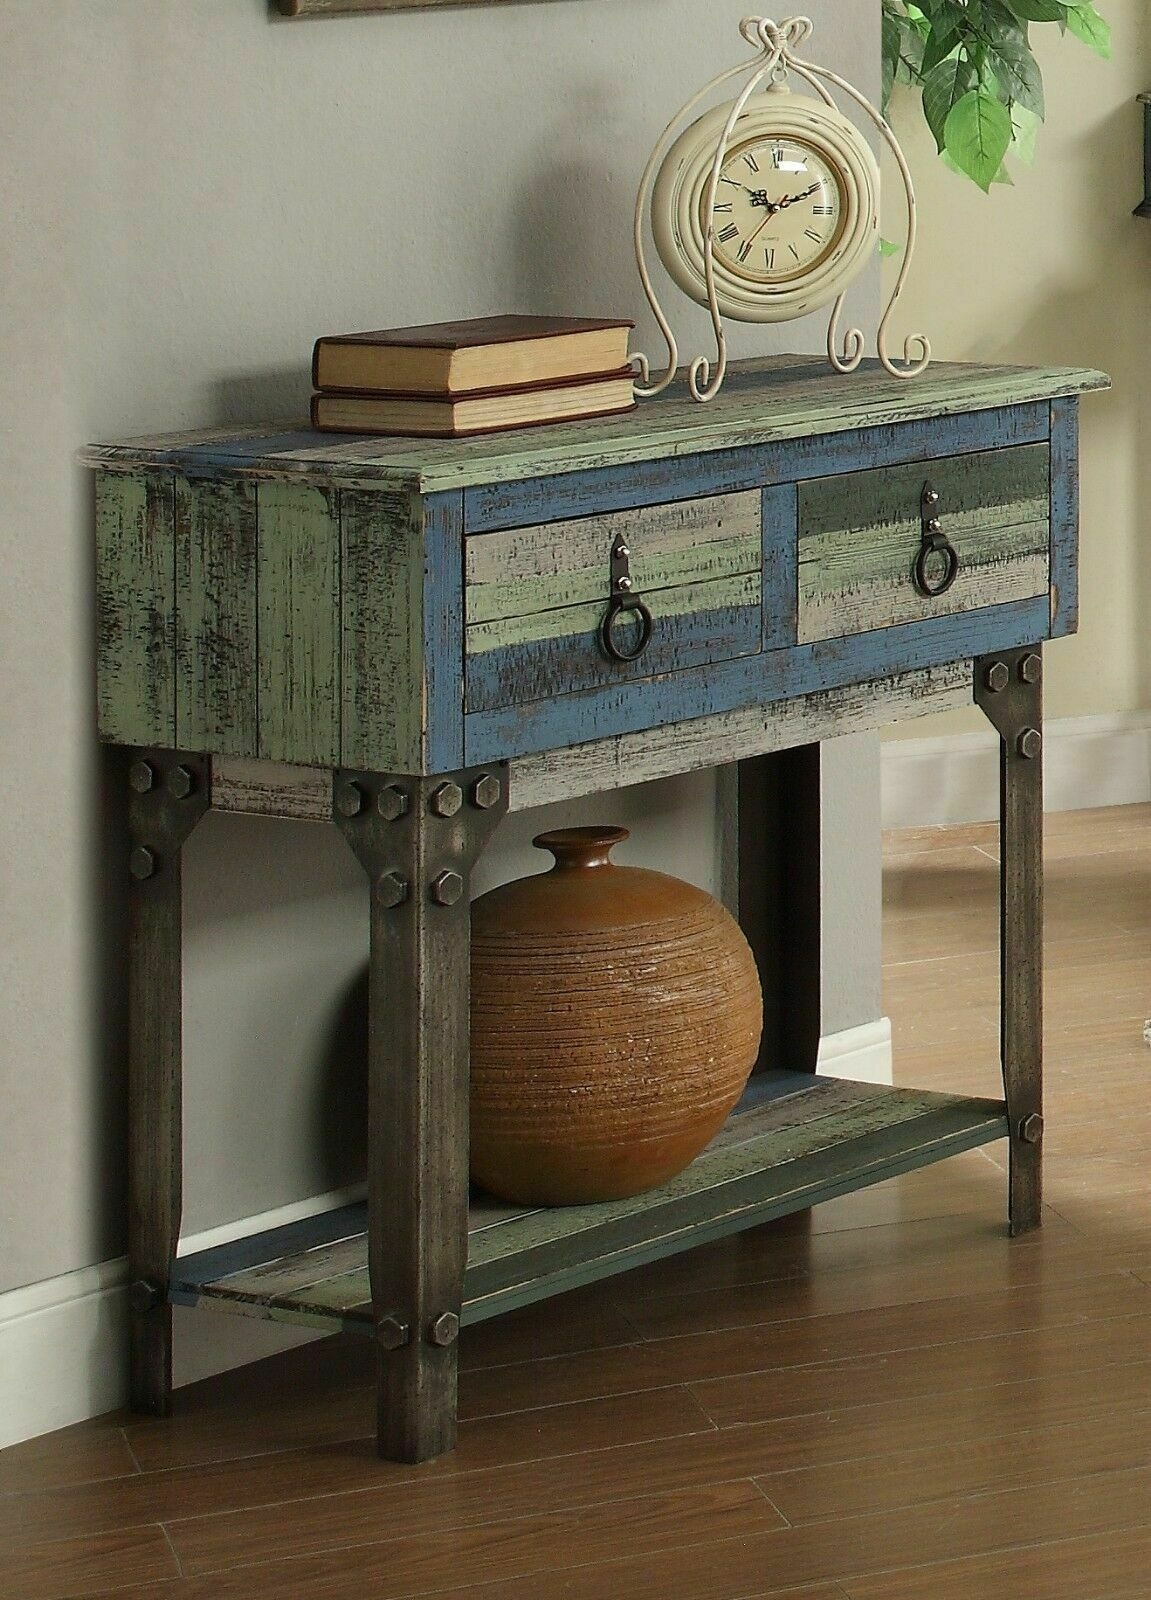 Vintage Rustic Small Console Sofa Table Distressed 2 Drawer Wood Blue Gray Entry Sofa Table Ideas Of Sofa Table Sofa Table In 2020 Sofa Table Sofa Tables Table